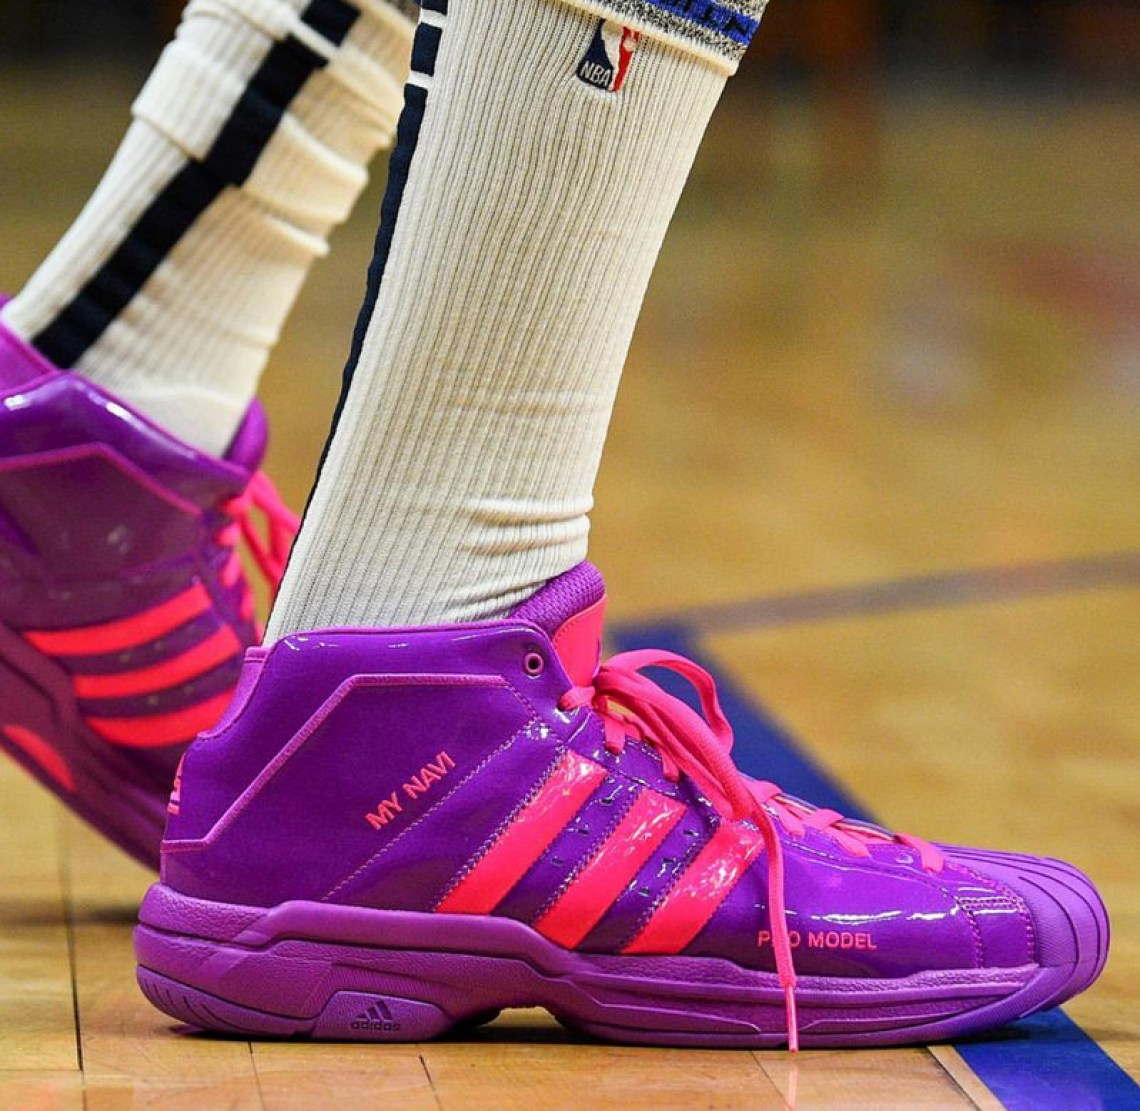 1d30a1369f346 ... Nick Young in his adidas Pro Model PE (photo via SC by Brian Rothmuller)